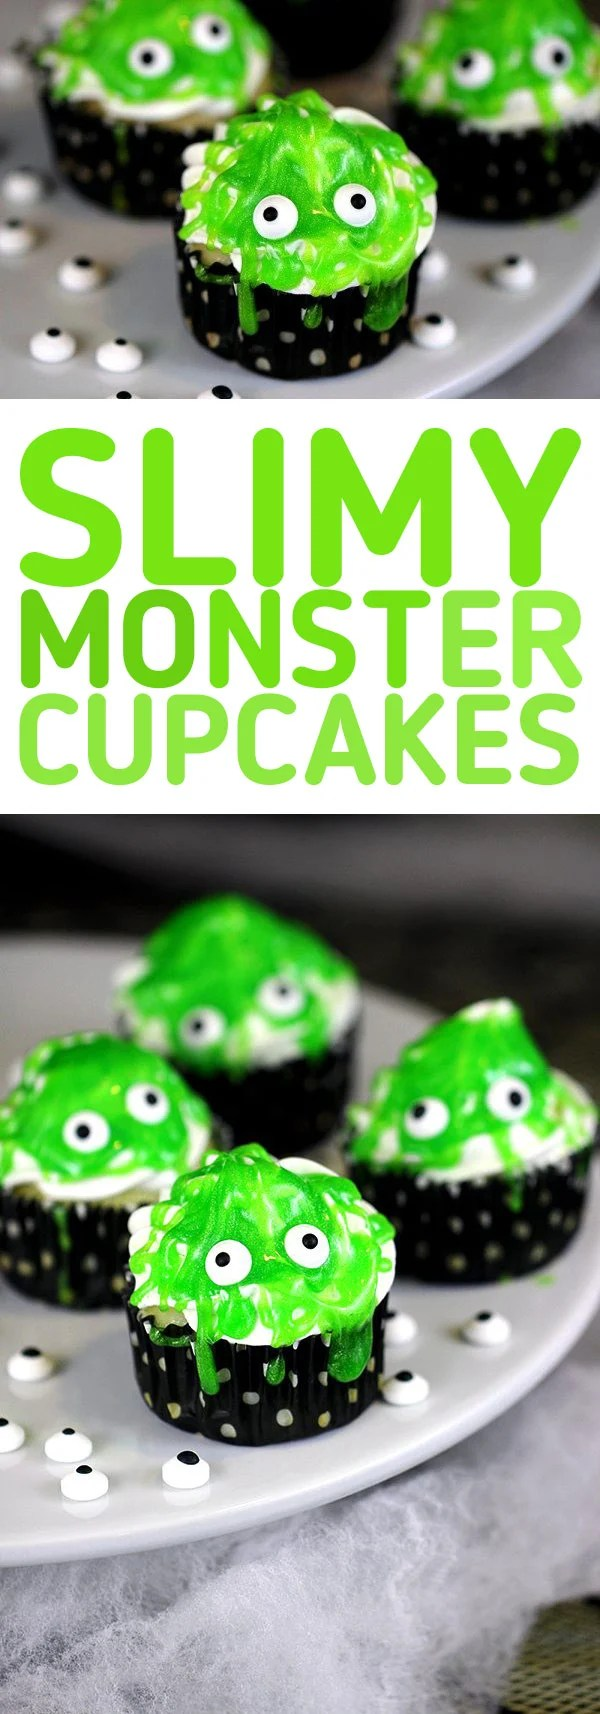 Slimy Monster Cupcakes. Cute and spooky comes together with these super easy cupcakes. Great for Halloween parties and monster theme parties.